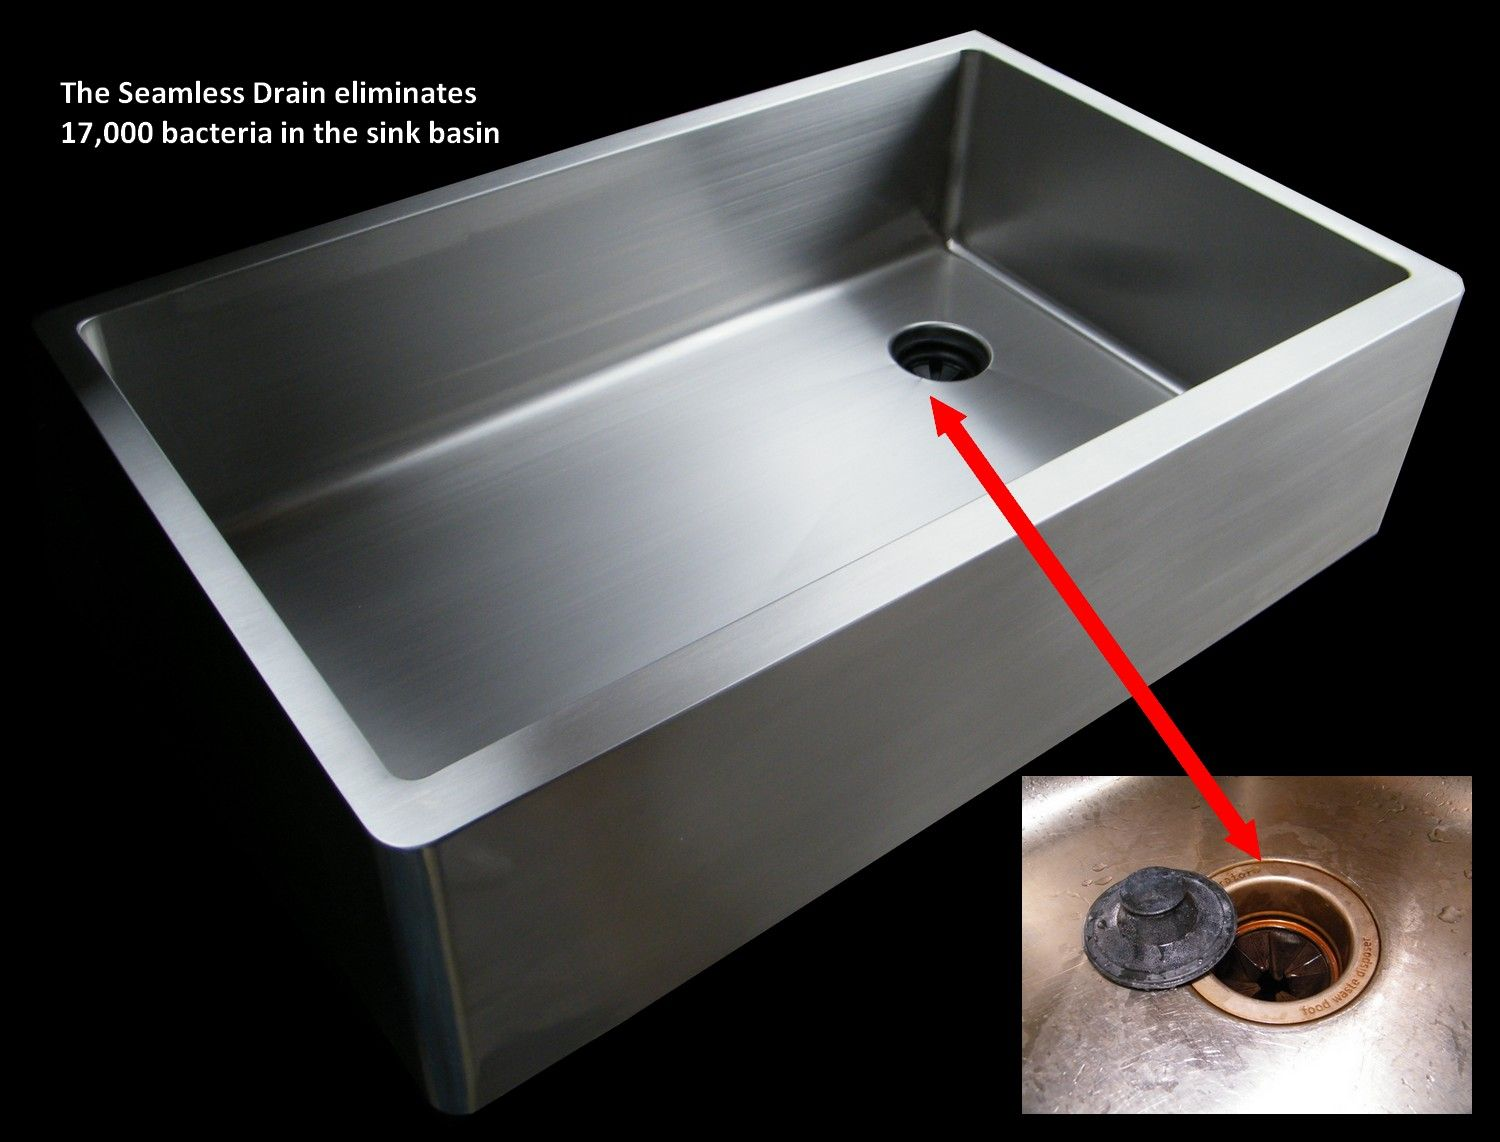 Ultraclean Sinks Offer A Seamless Offset Drain Keep Debris At One End Of The Stainless Steel Sink And Easily Rinse To Corner